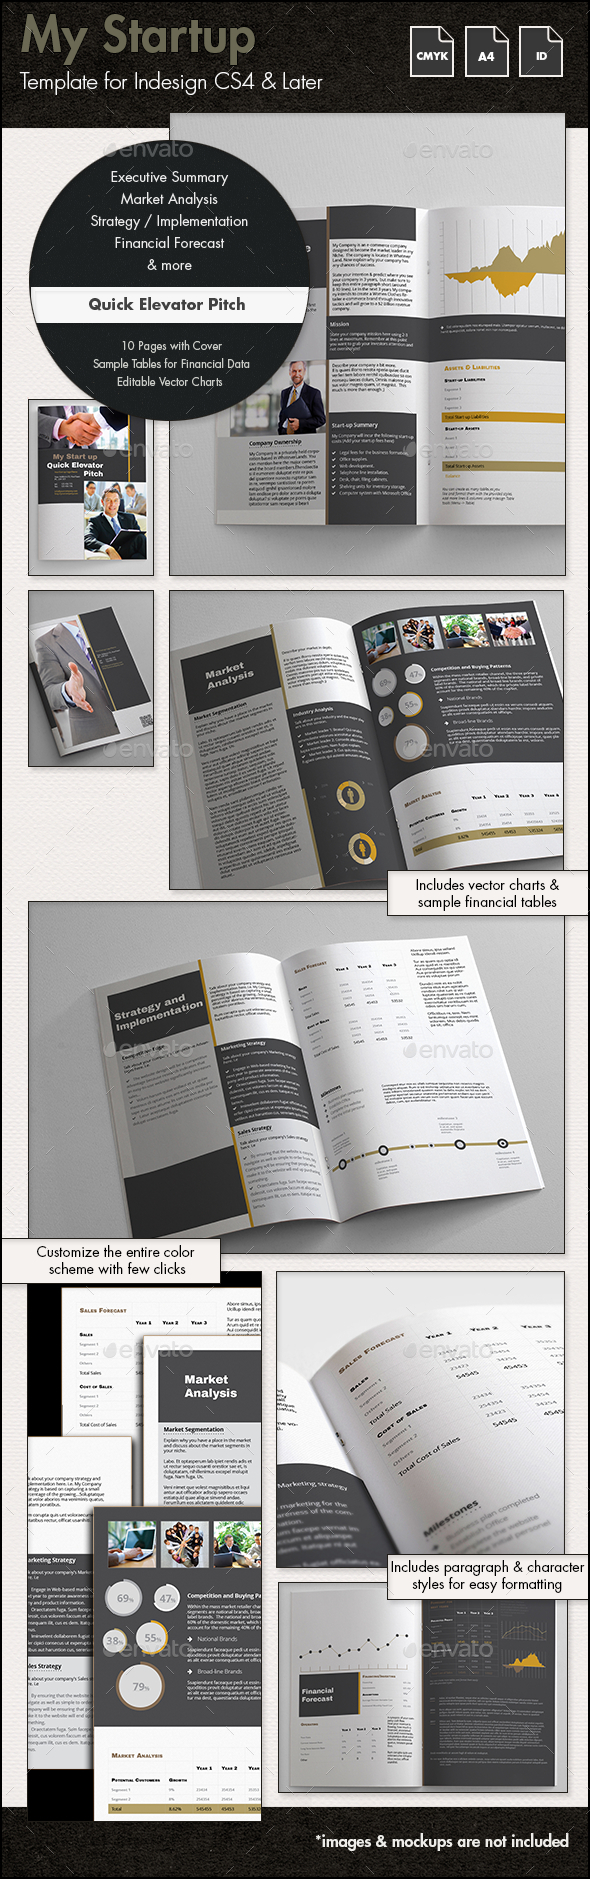 My Startup - Quick Elevator Pitch Template - A4 - Proposals & Invoices Stationery